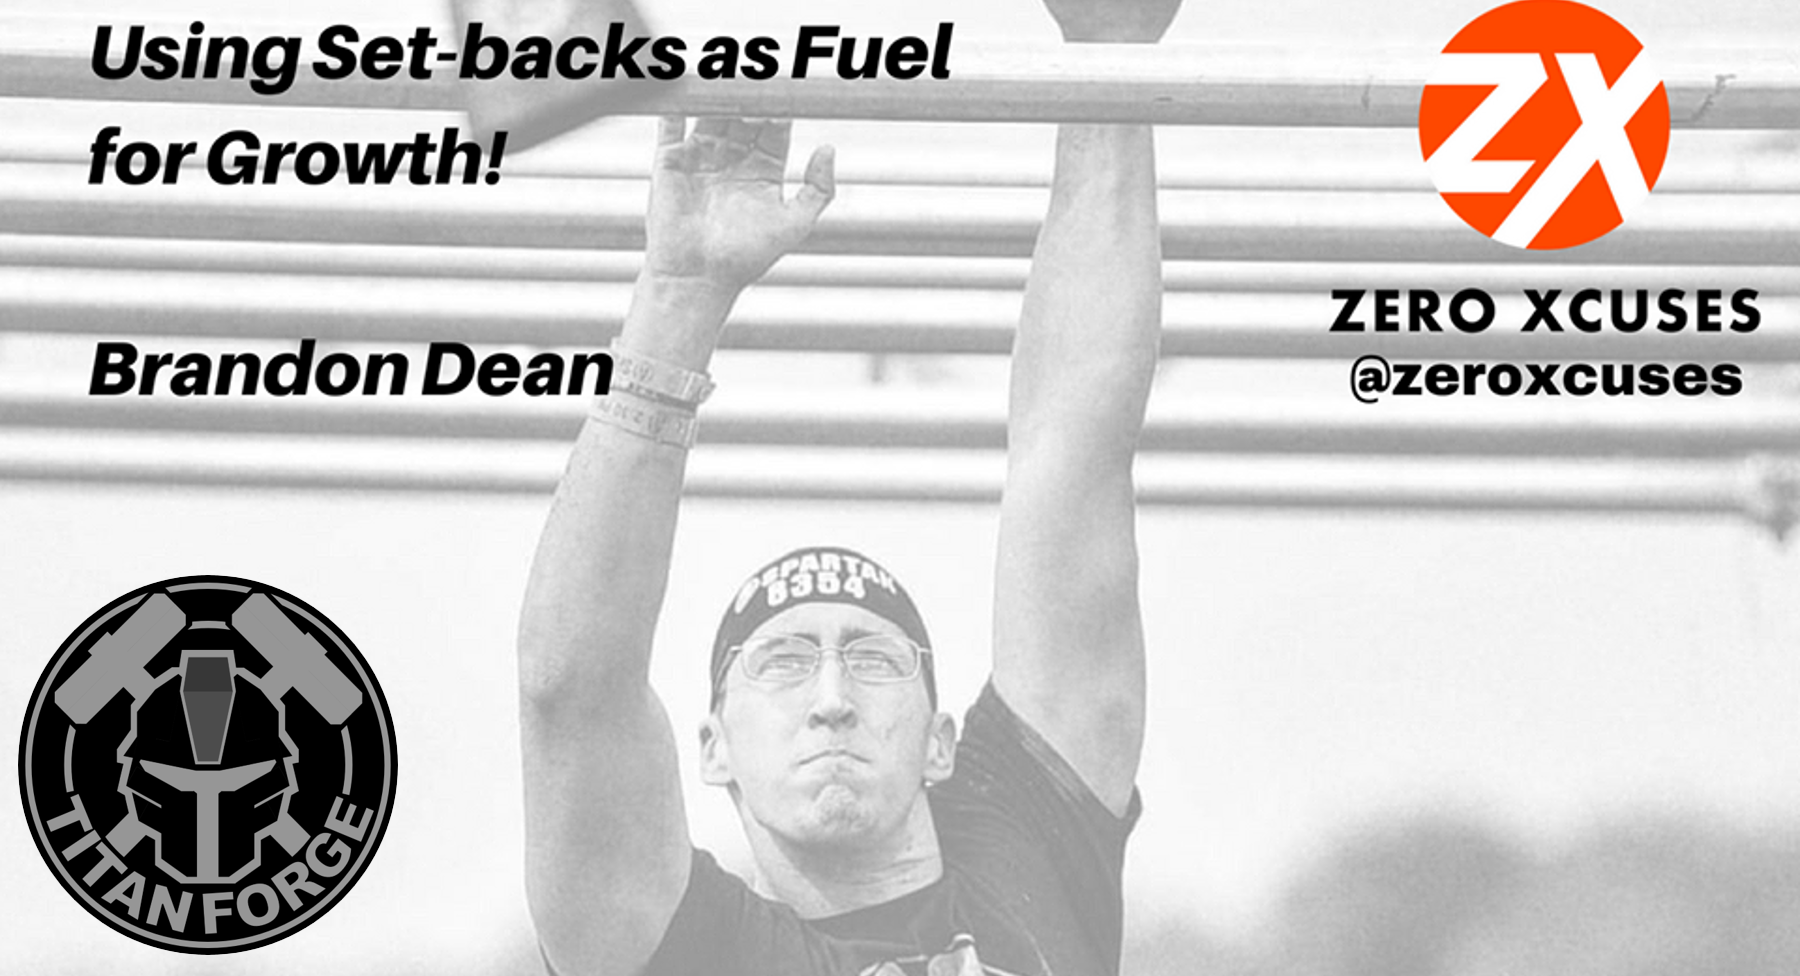 Using Set-backs as Fuel for Growth!